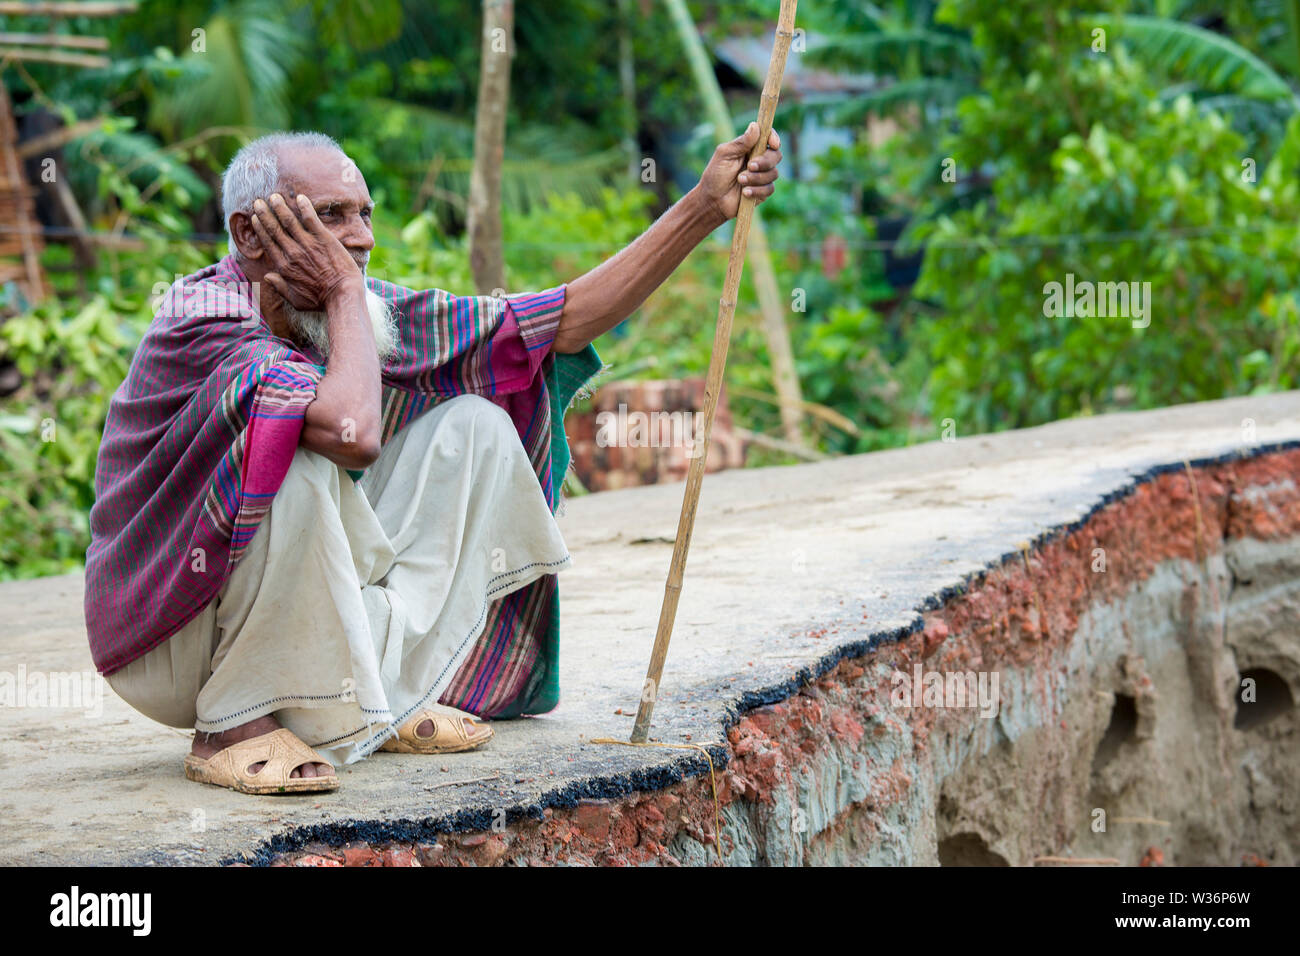 Bangladesh – June 27, 2015: An old man is showing where is his previous house was at Rasulpur, Barisal District. - Stock Image